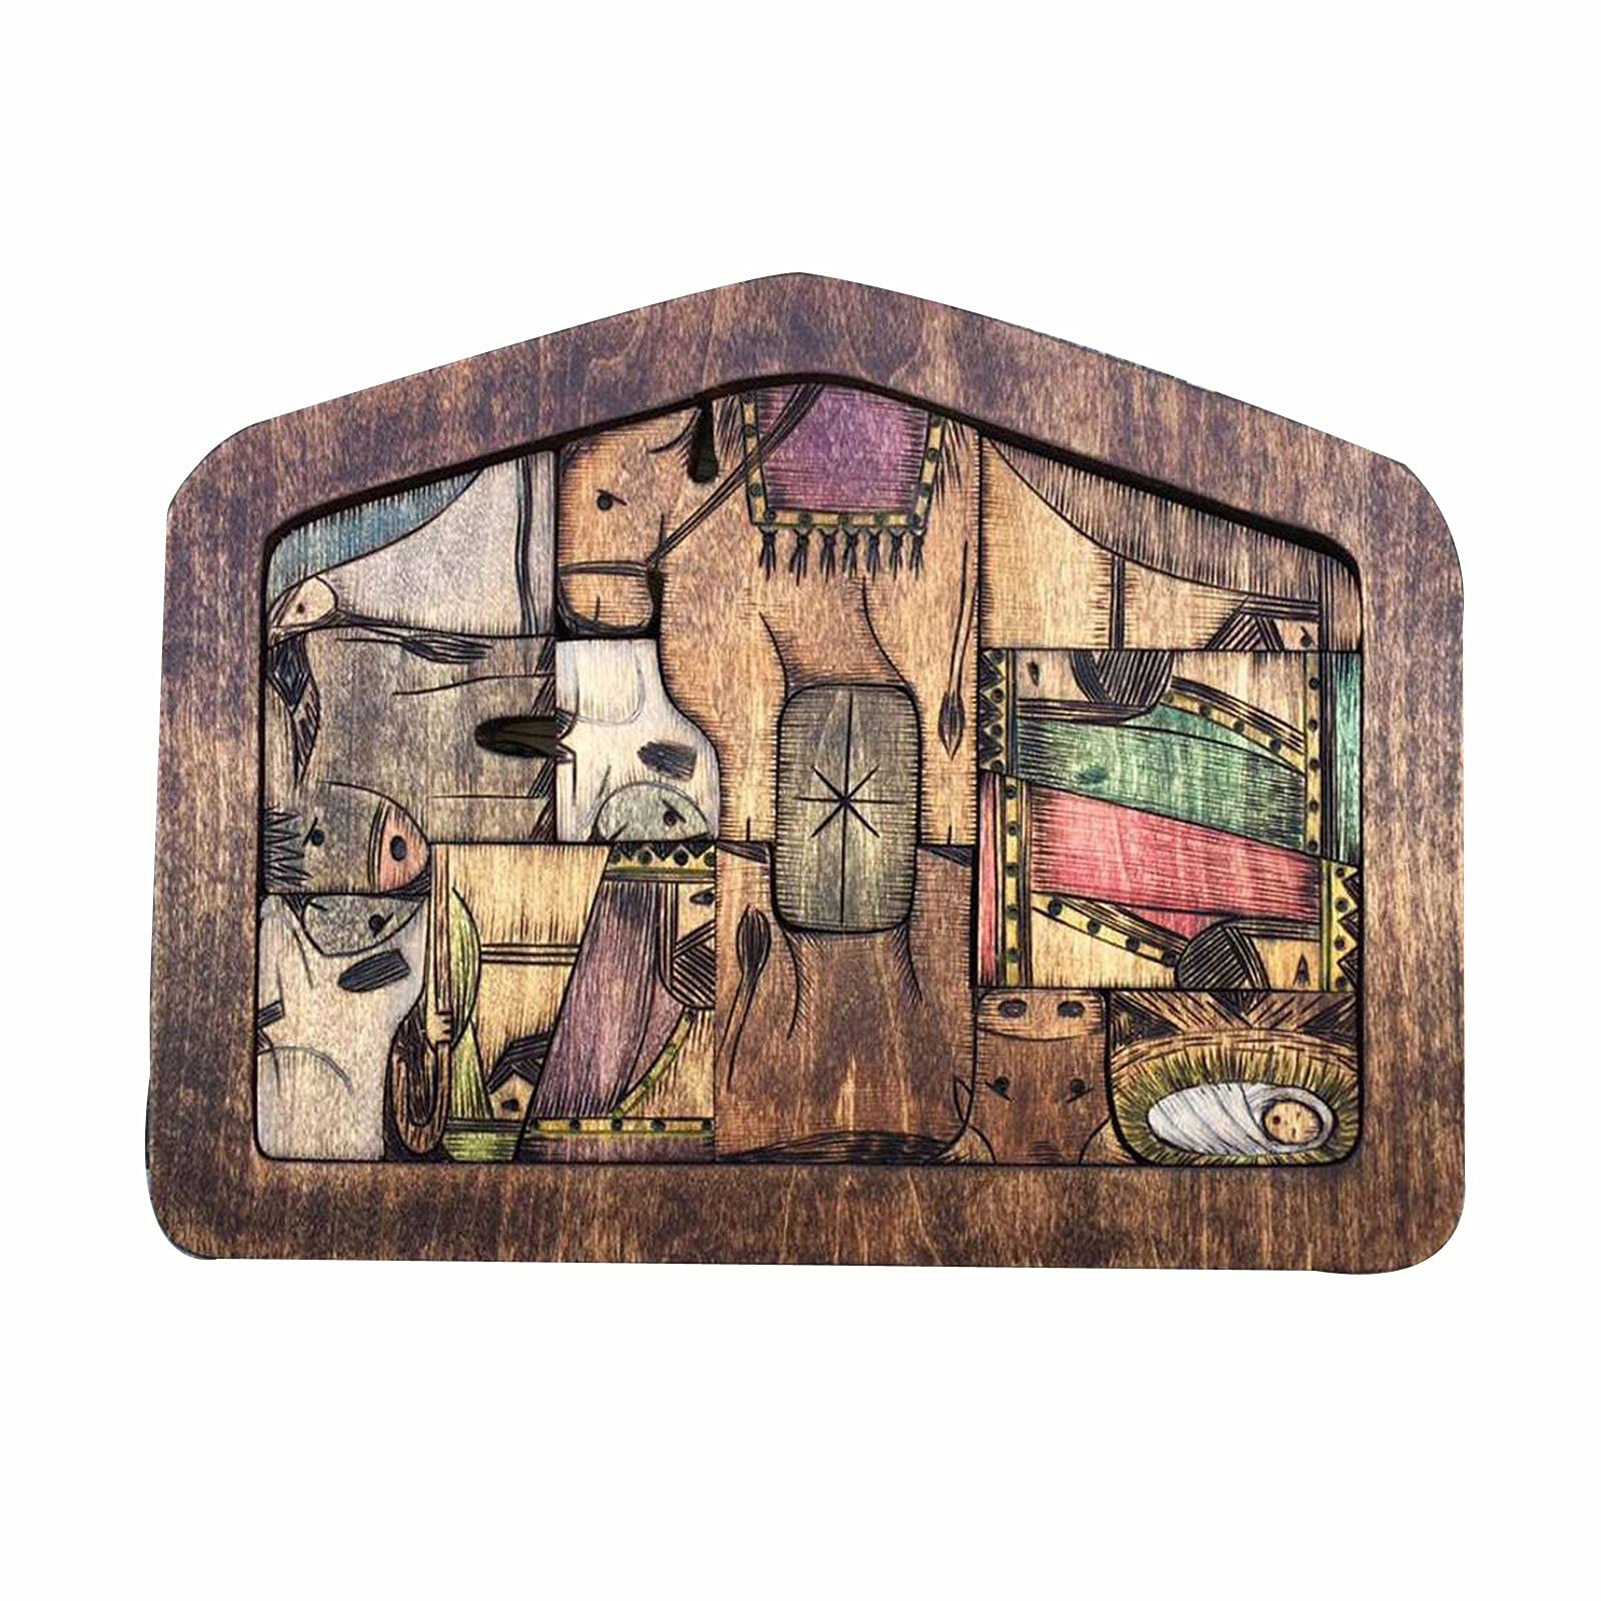 Фото - Nativity Puzzle with Wood Burned Design Wooden Jesus Puzzles Jigsaw Puzzle Game for Adults and Kids Home Decoration Accessories make and play nativity